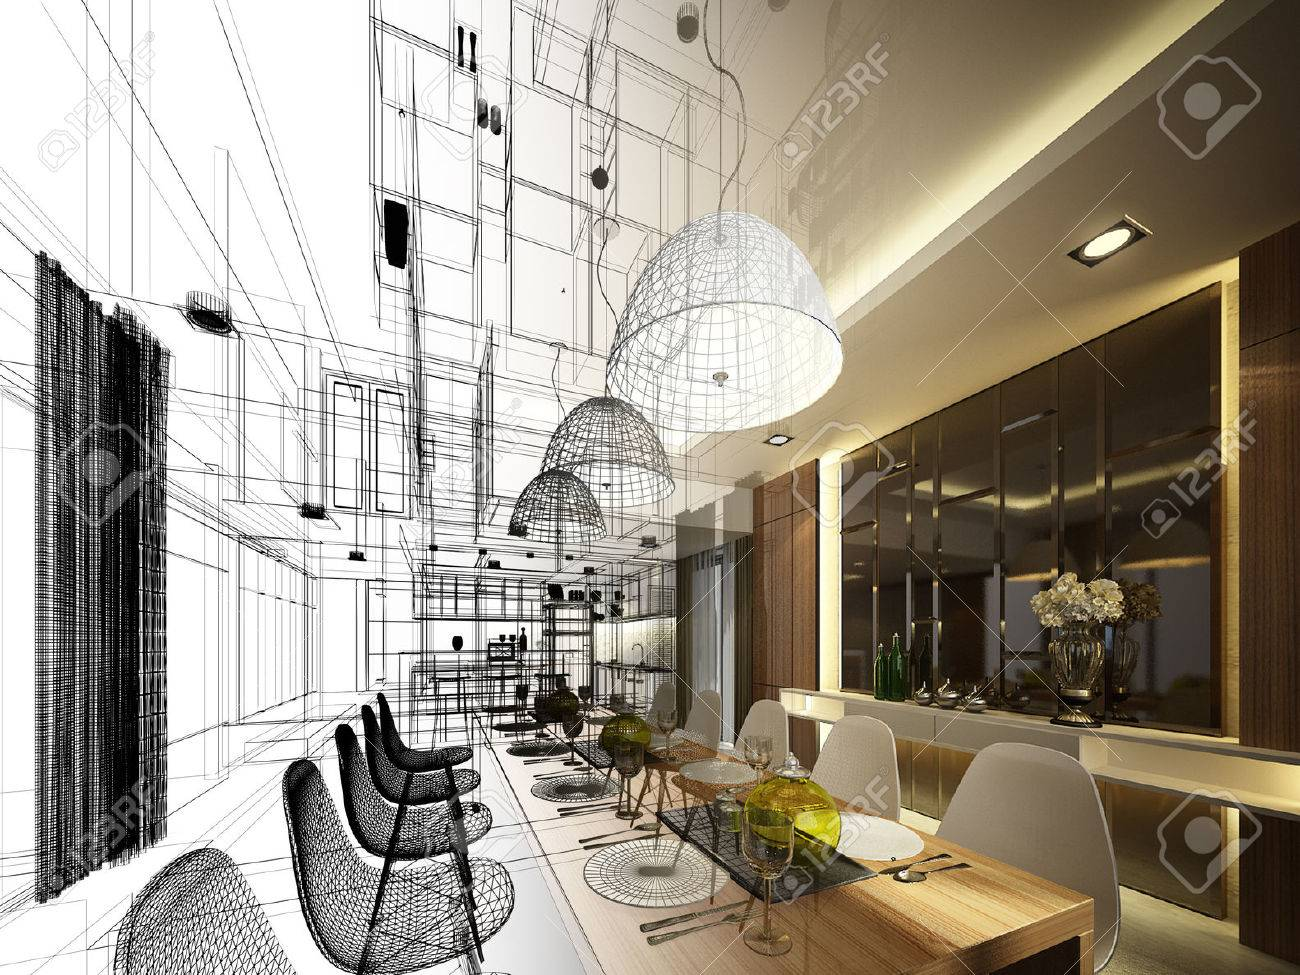 Abstract sketch design of interior dining - 33218546